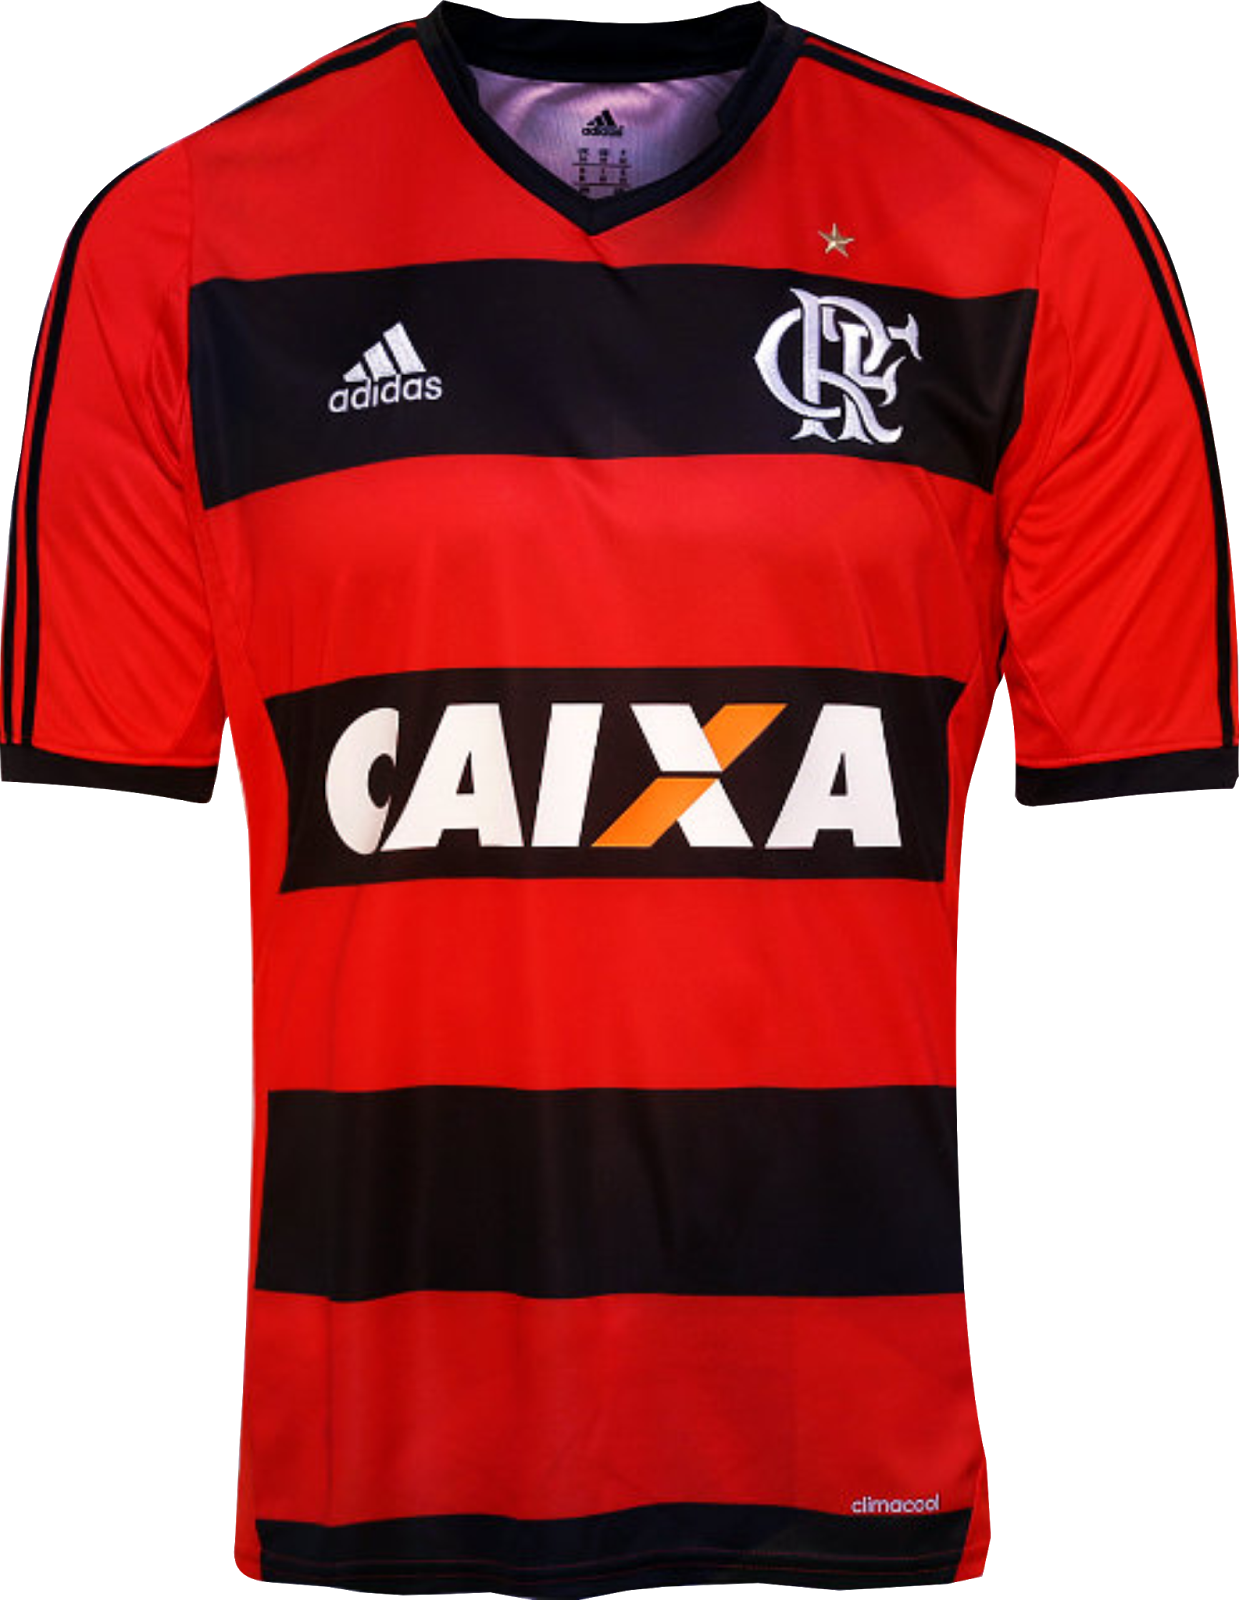 cb353828c22dd CAMISA OFICIAL DO FLAMENGO 2015 ADIDAS - DIAMOND